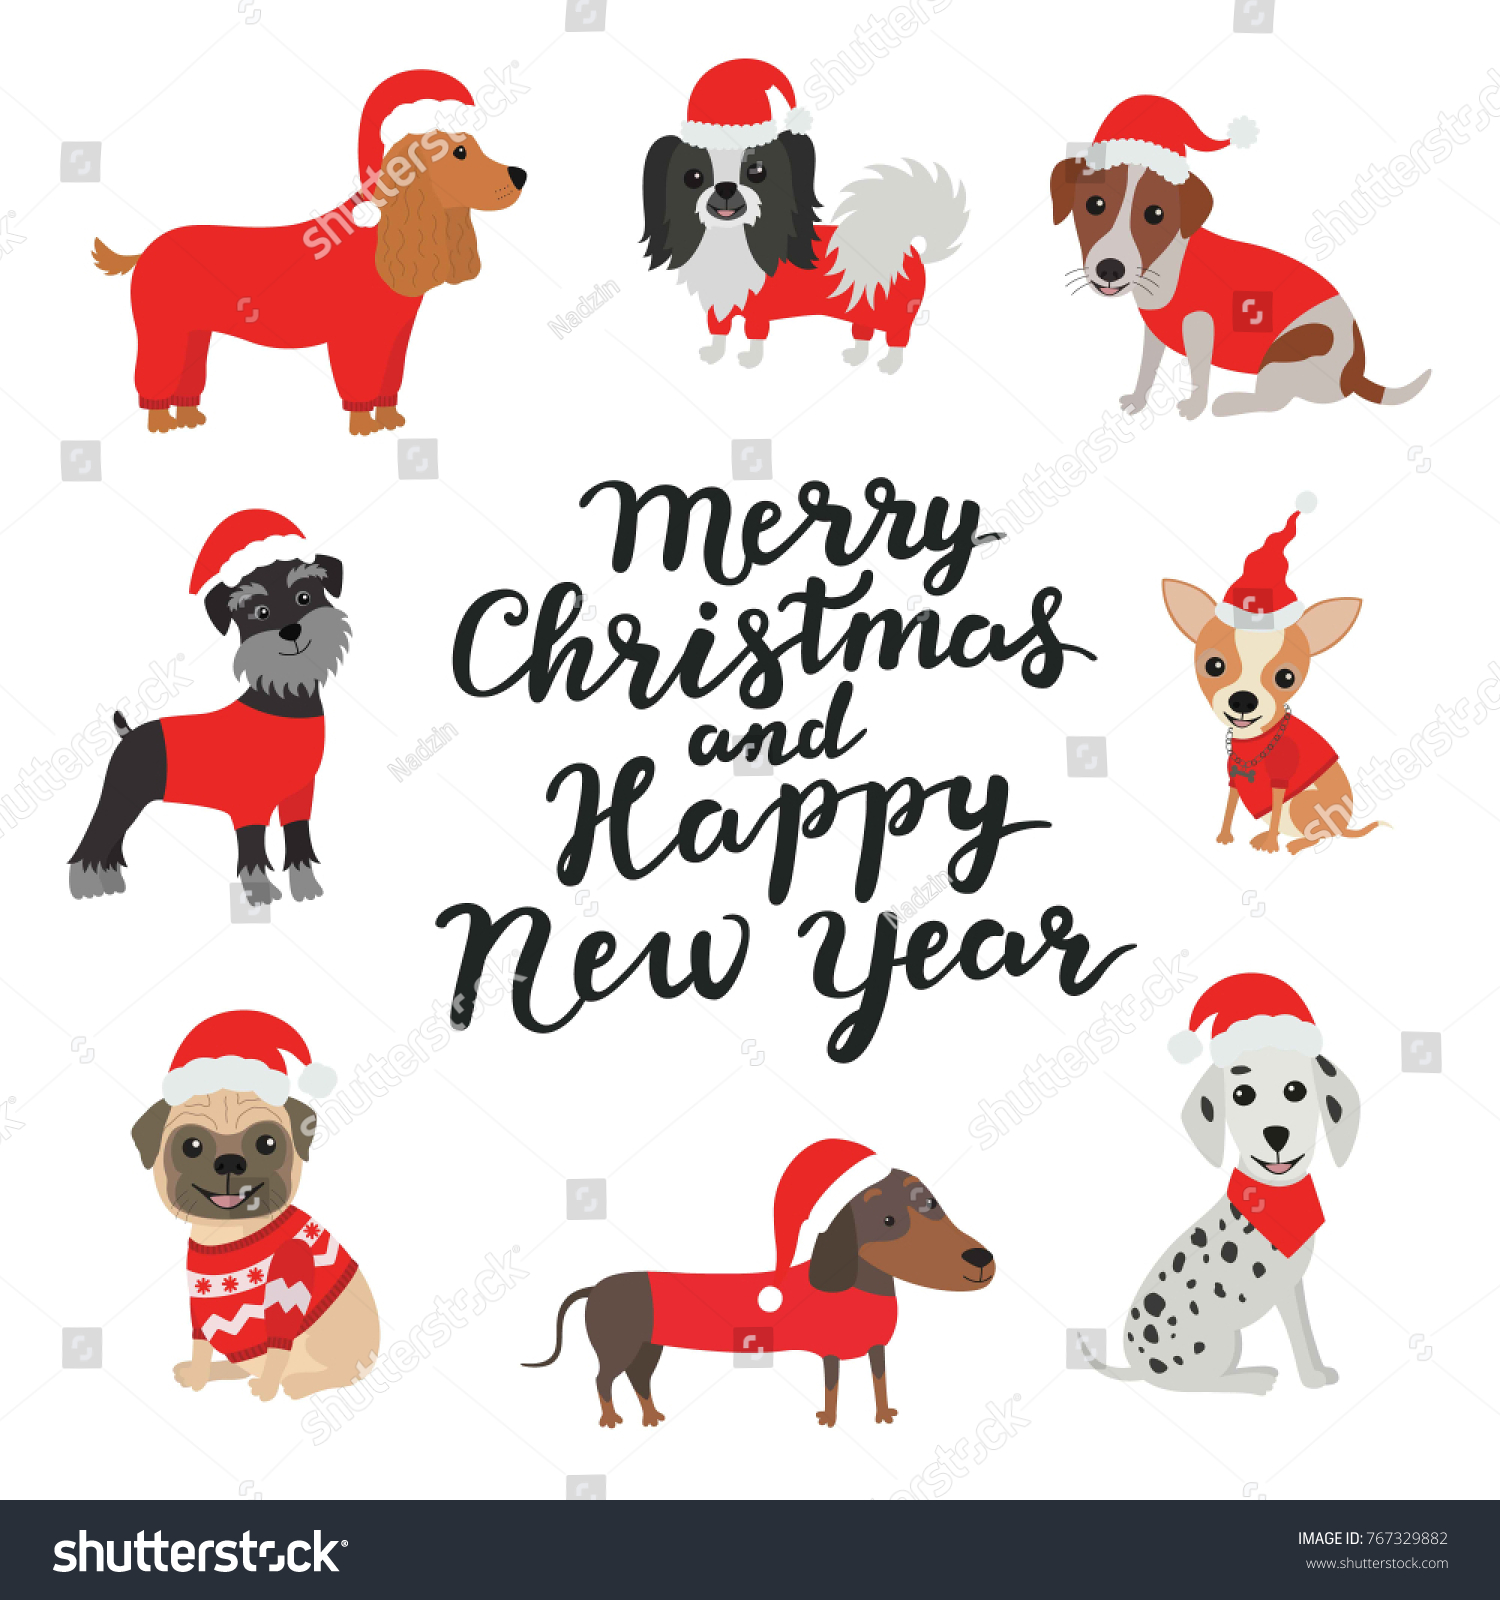 merry christmas and happy new year dogs in costumes santa claus